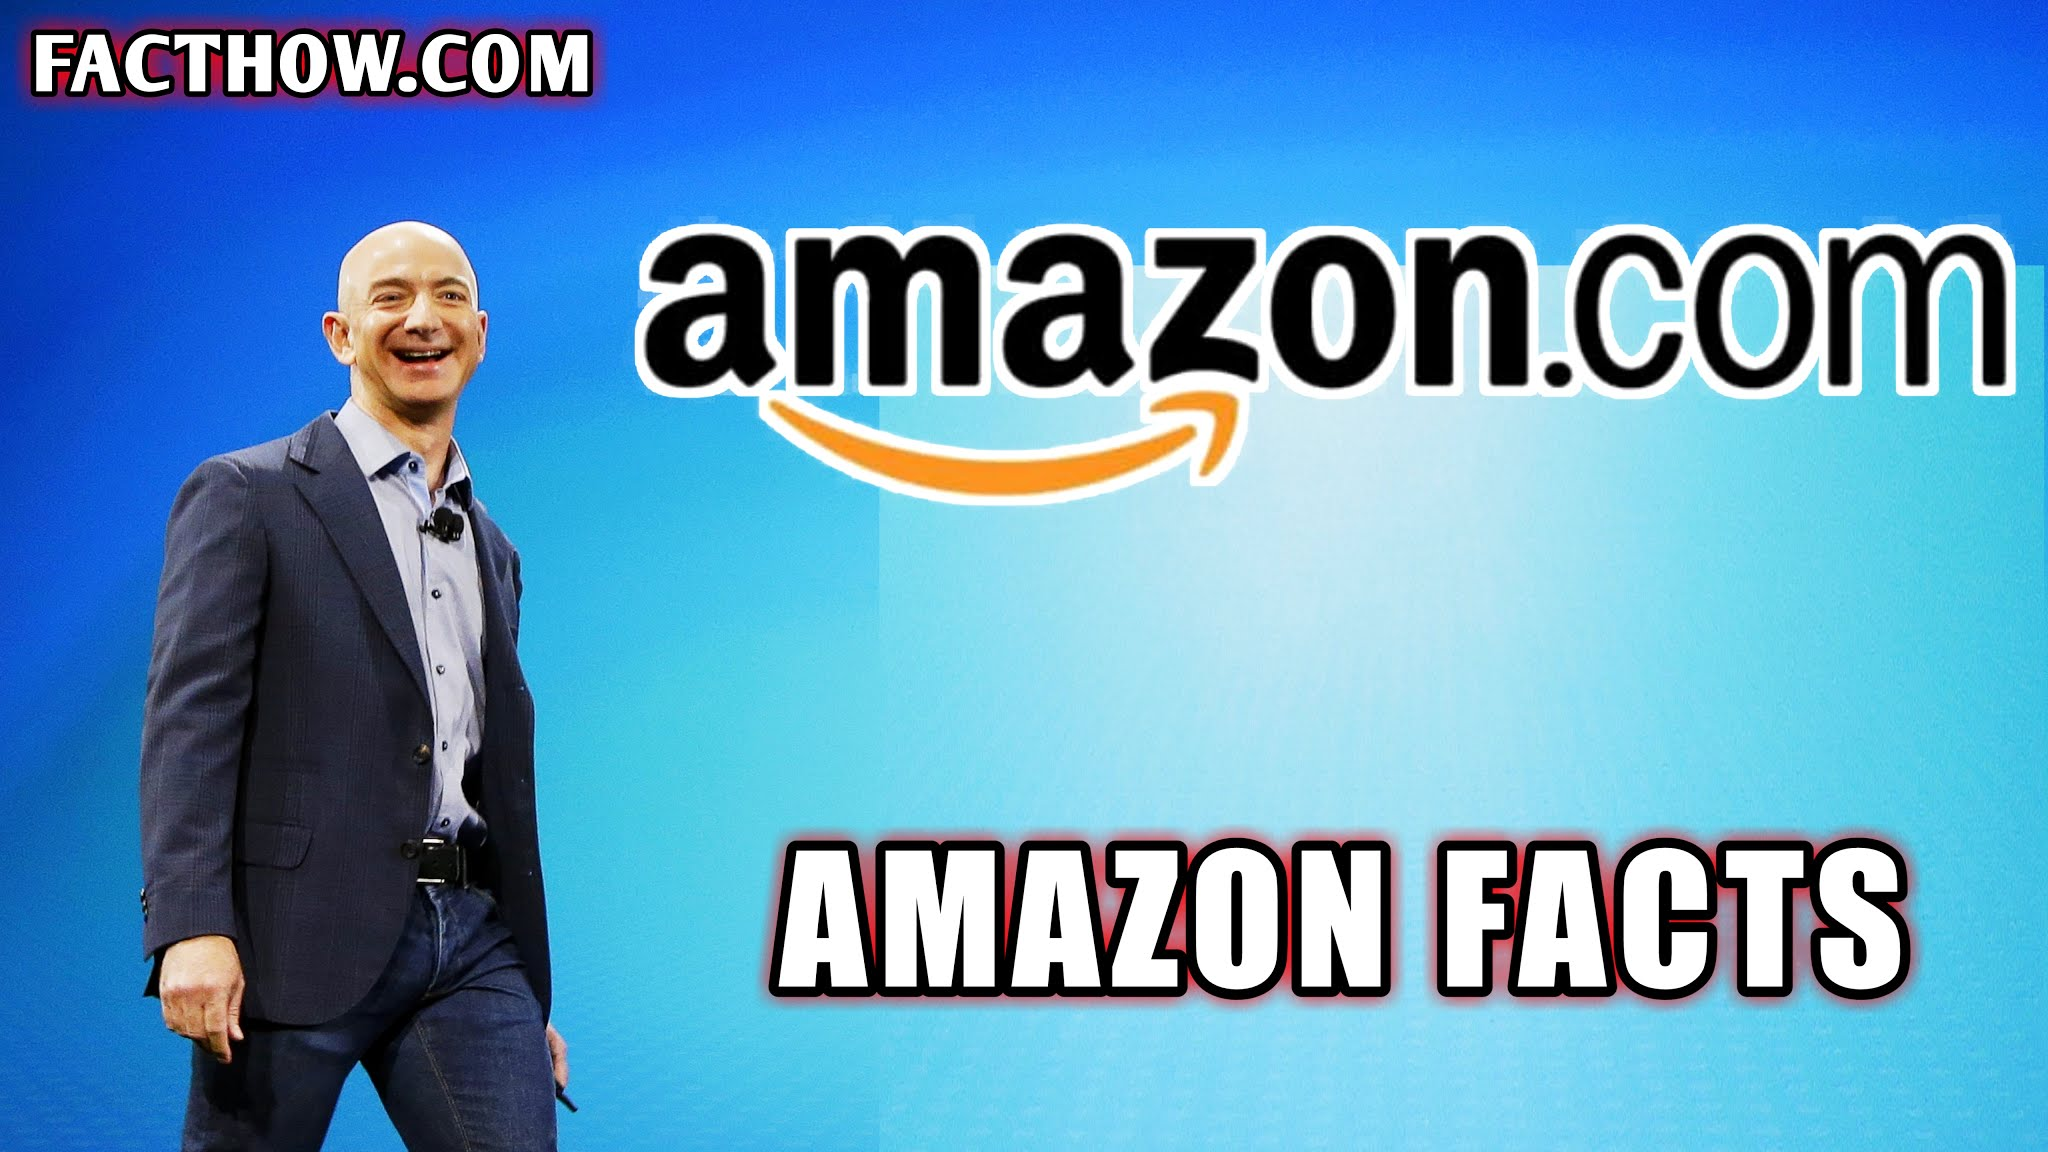 facts about amazon shopping site